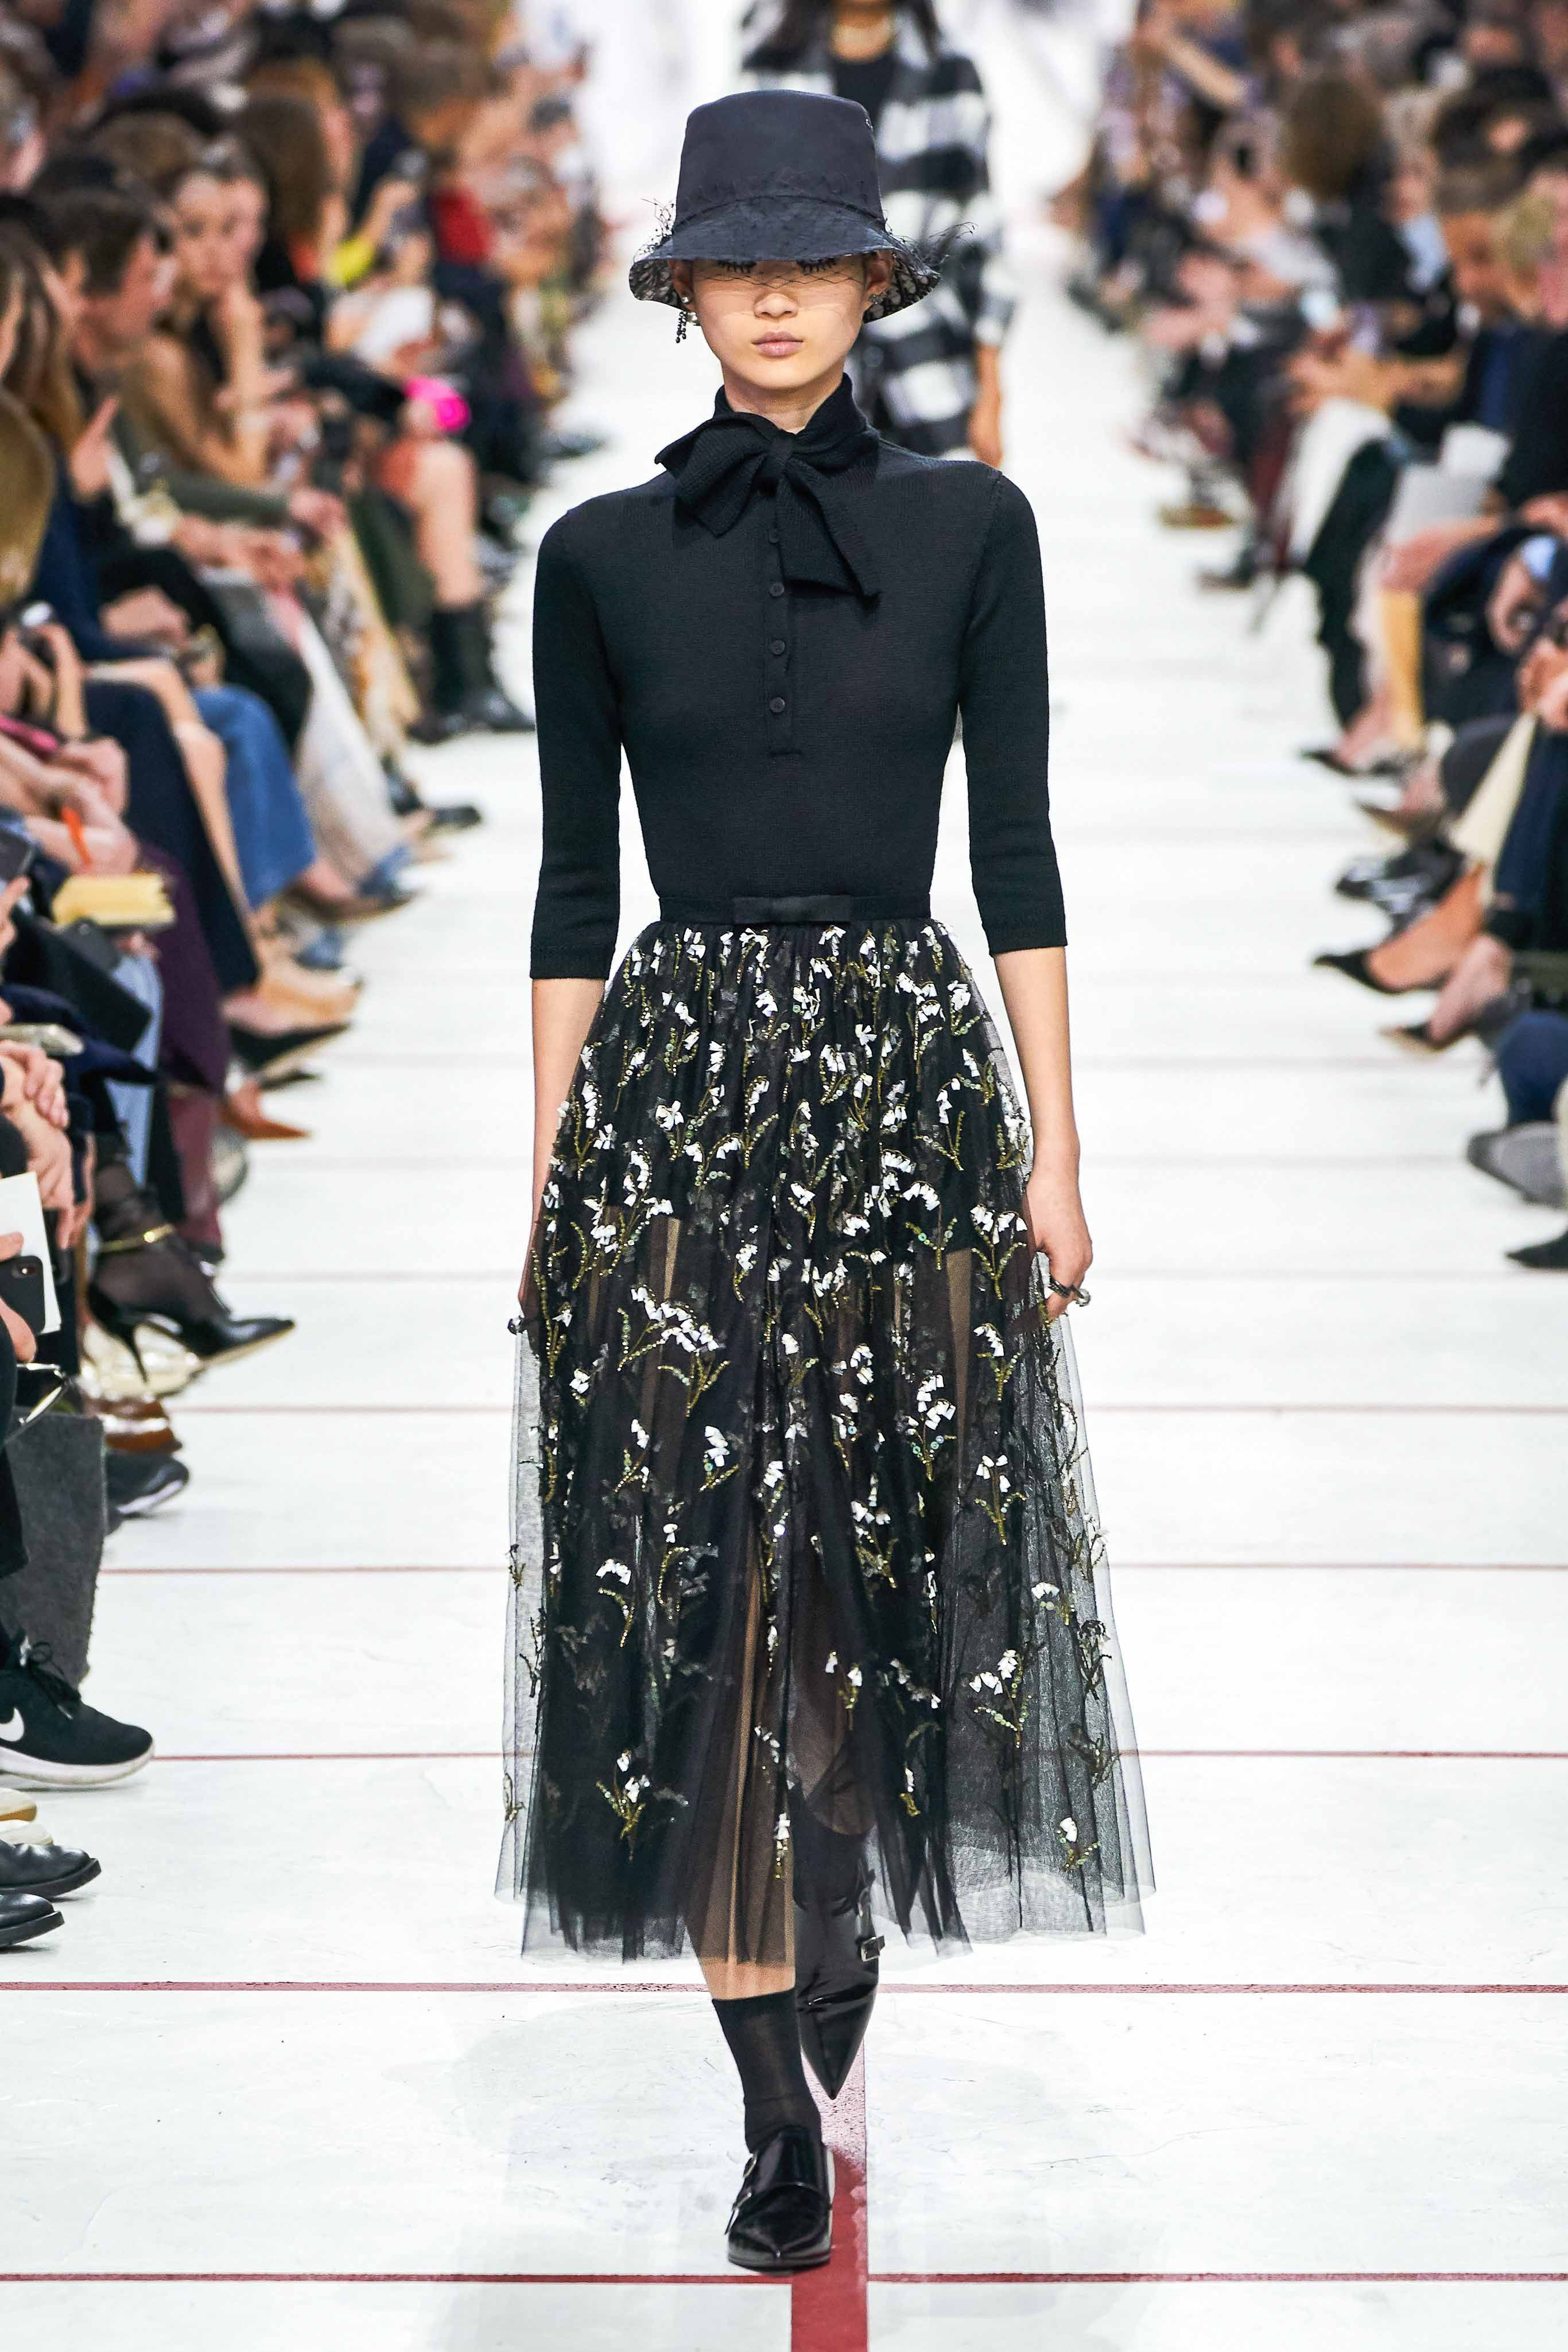 2020 Fashion Trends.Fall Winter 2019 2020 Trends Fashion Week Coverage